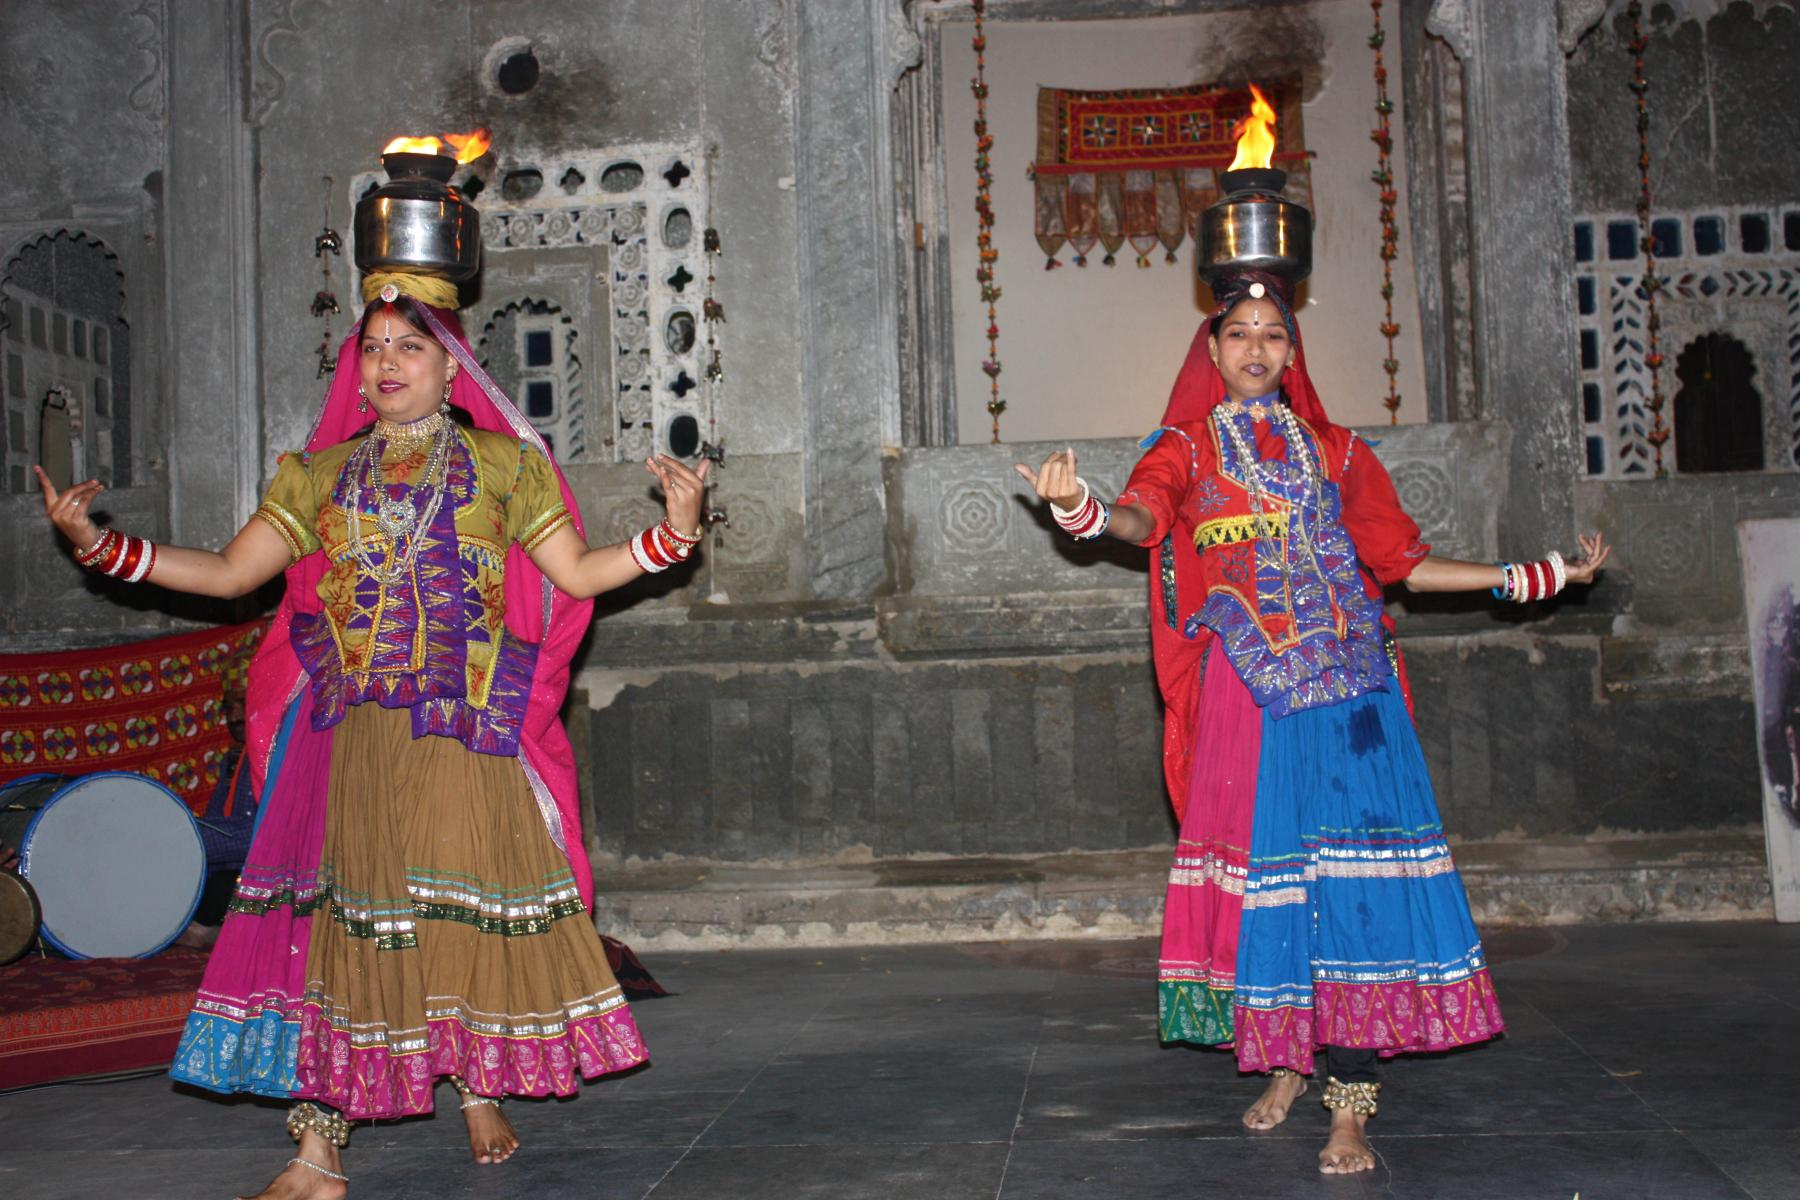 Grand Rajasthan Tour + Agra + New Delhi  starting at Rajasthan, India